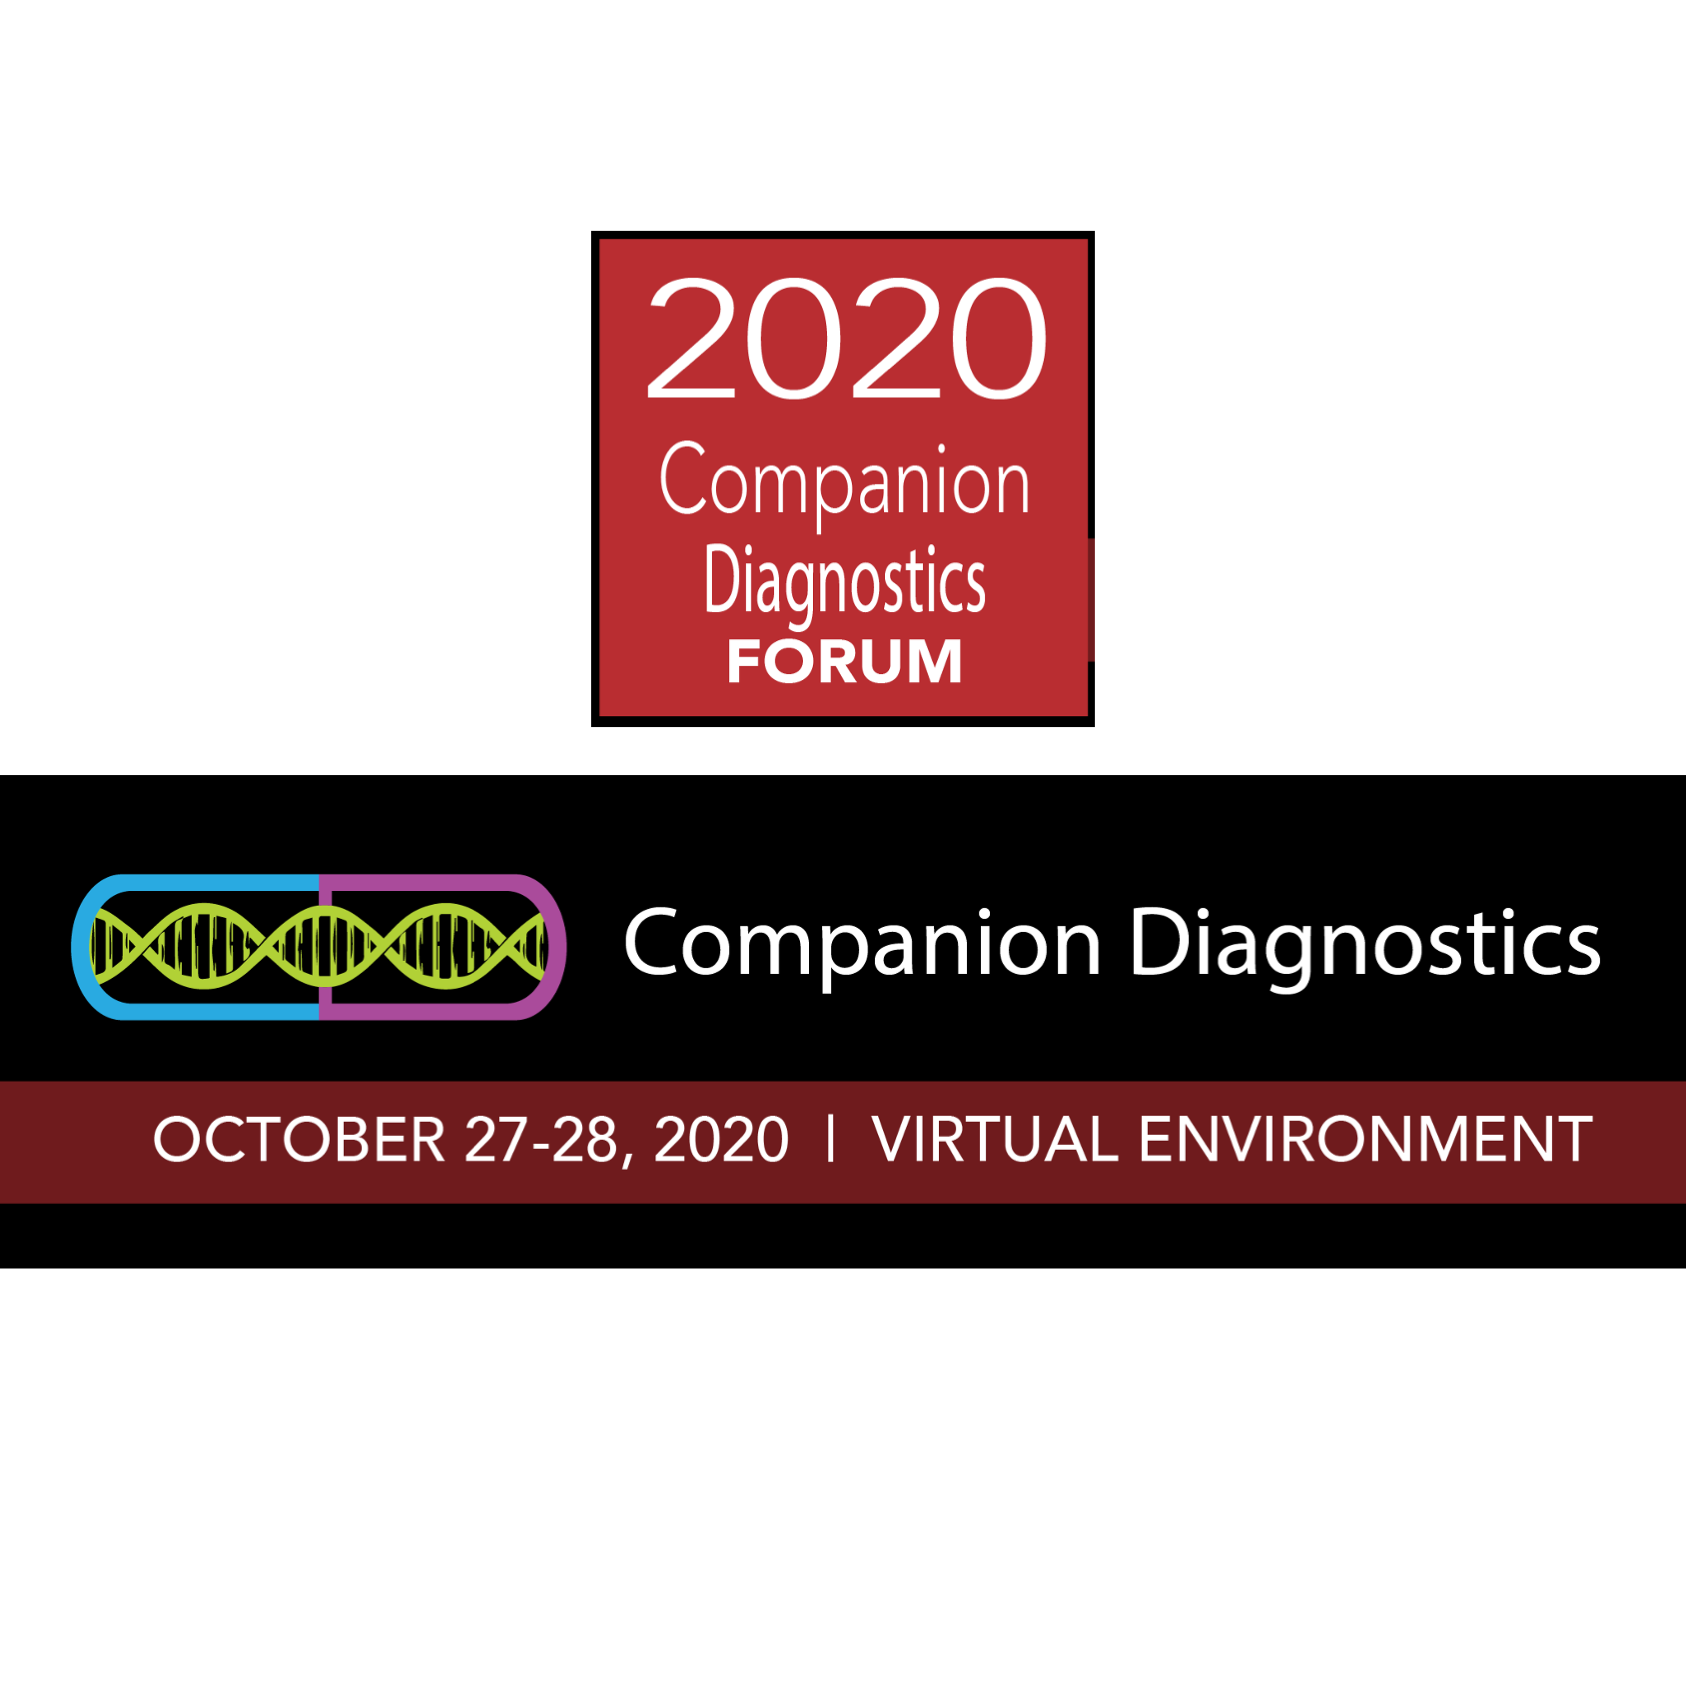 Companion Diagnostics Forum